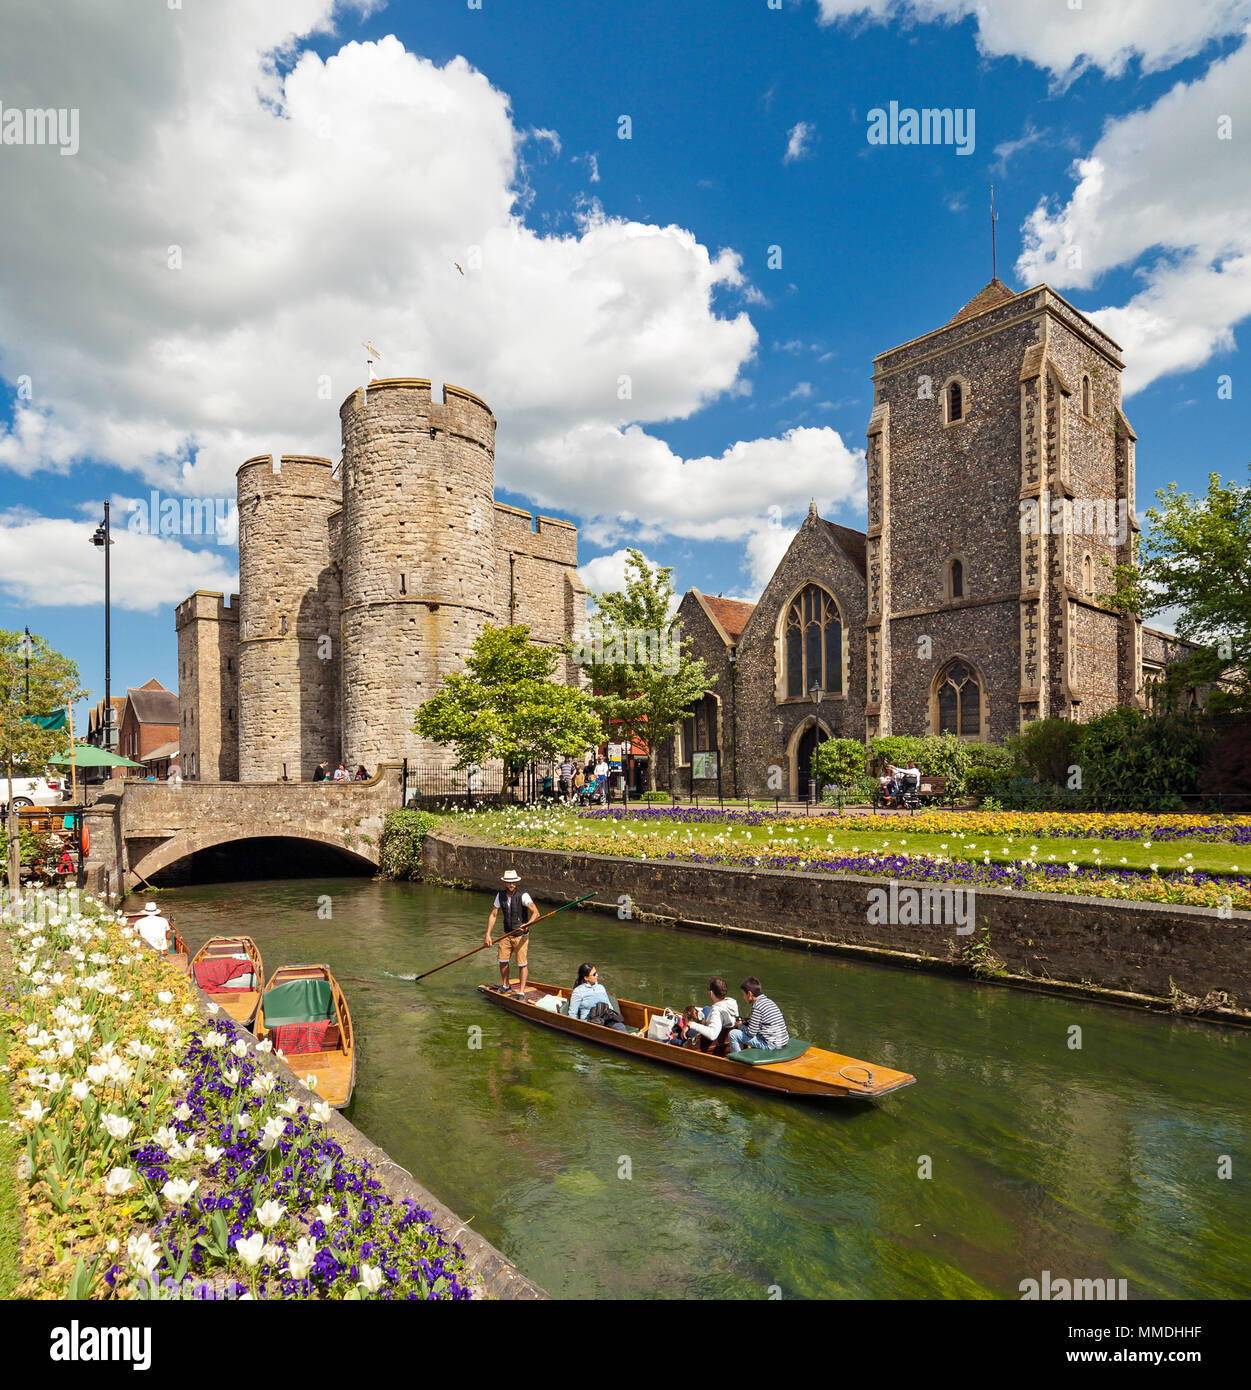 Canterbury scene with Westgate Towers Holy Cross Church and the river Stour. - Stock Image